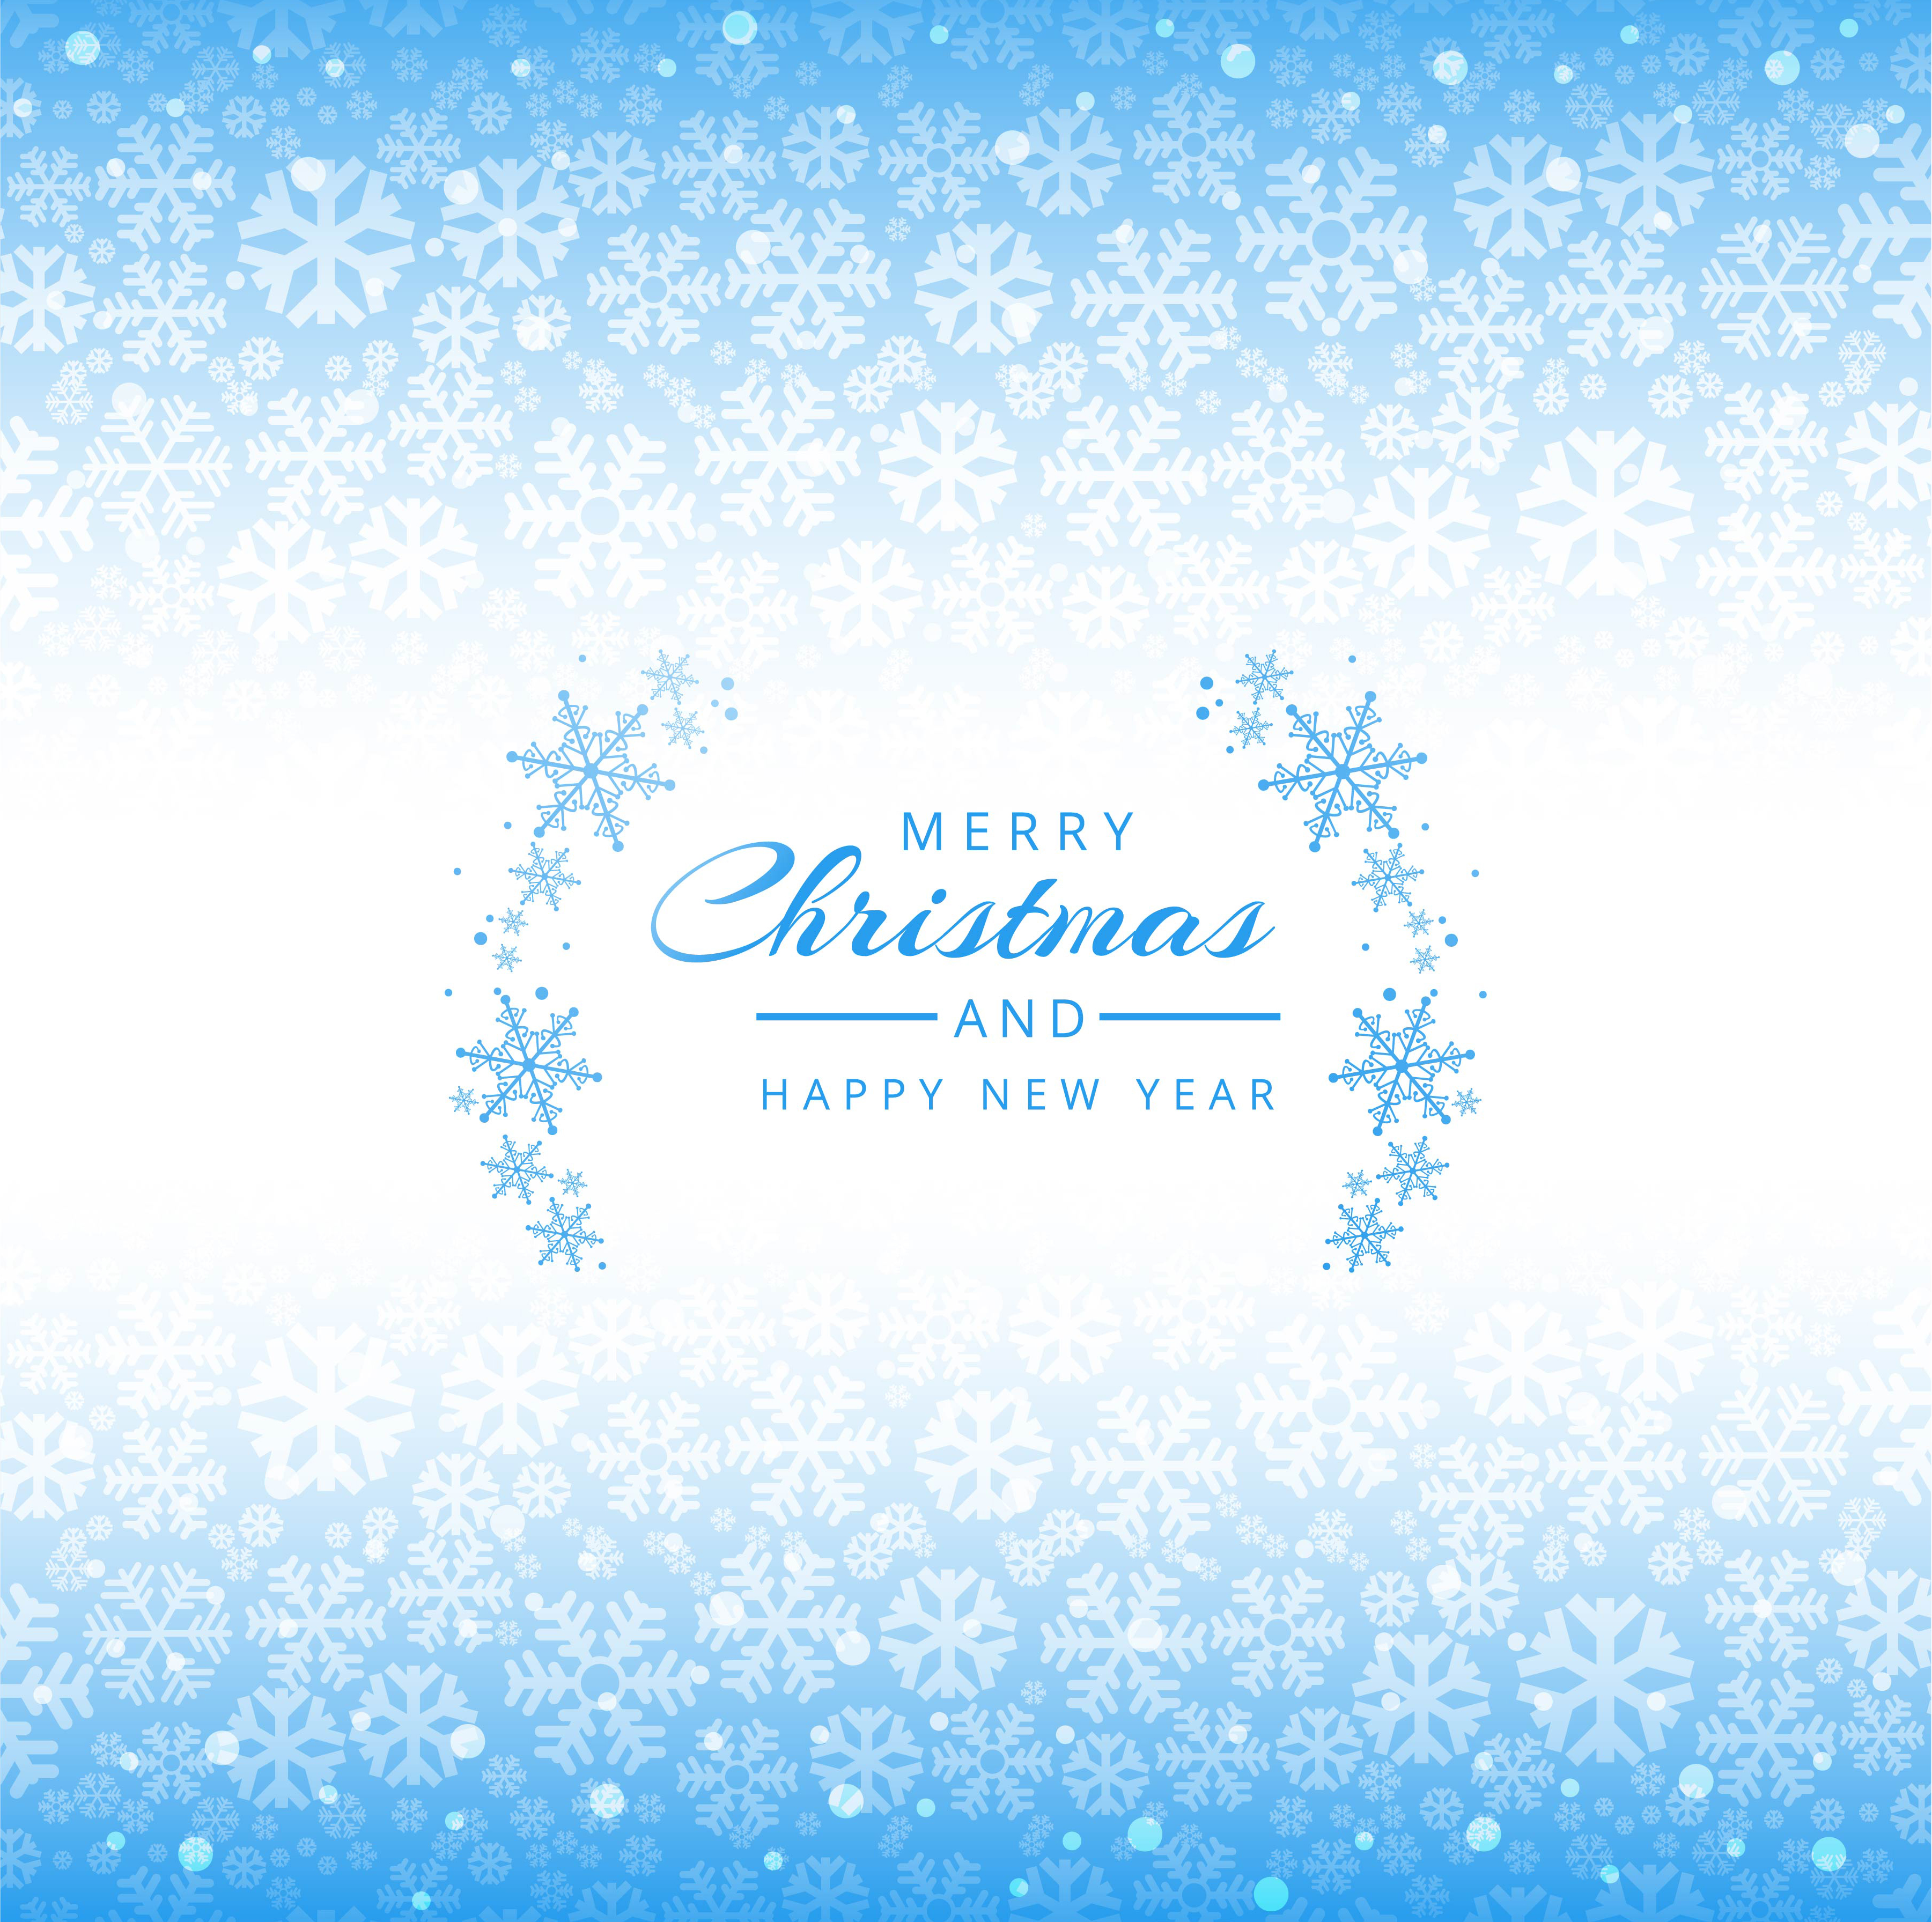 Merry Christmas snowflakes blue background - Download Free Vector ...